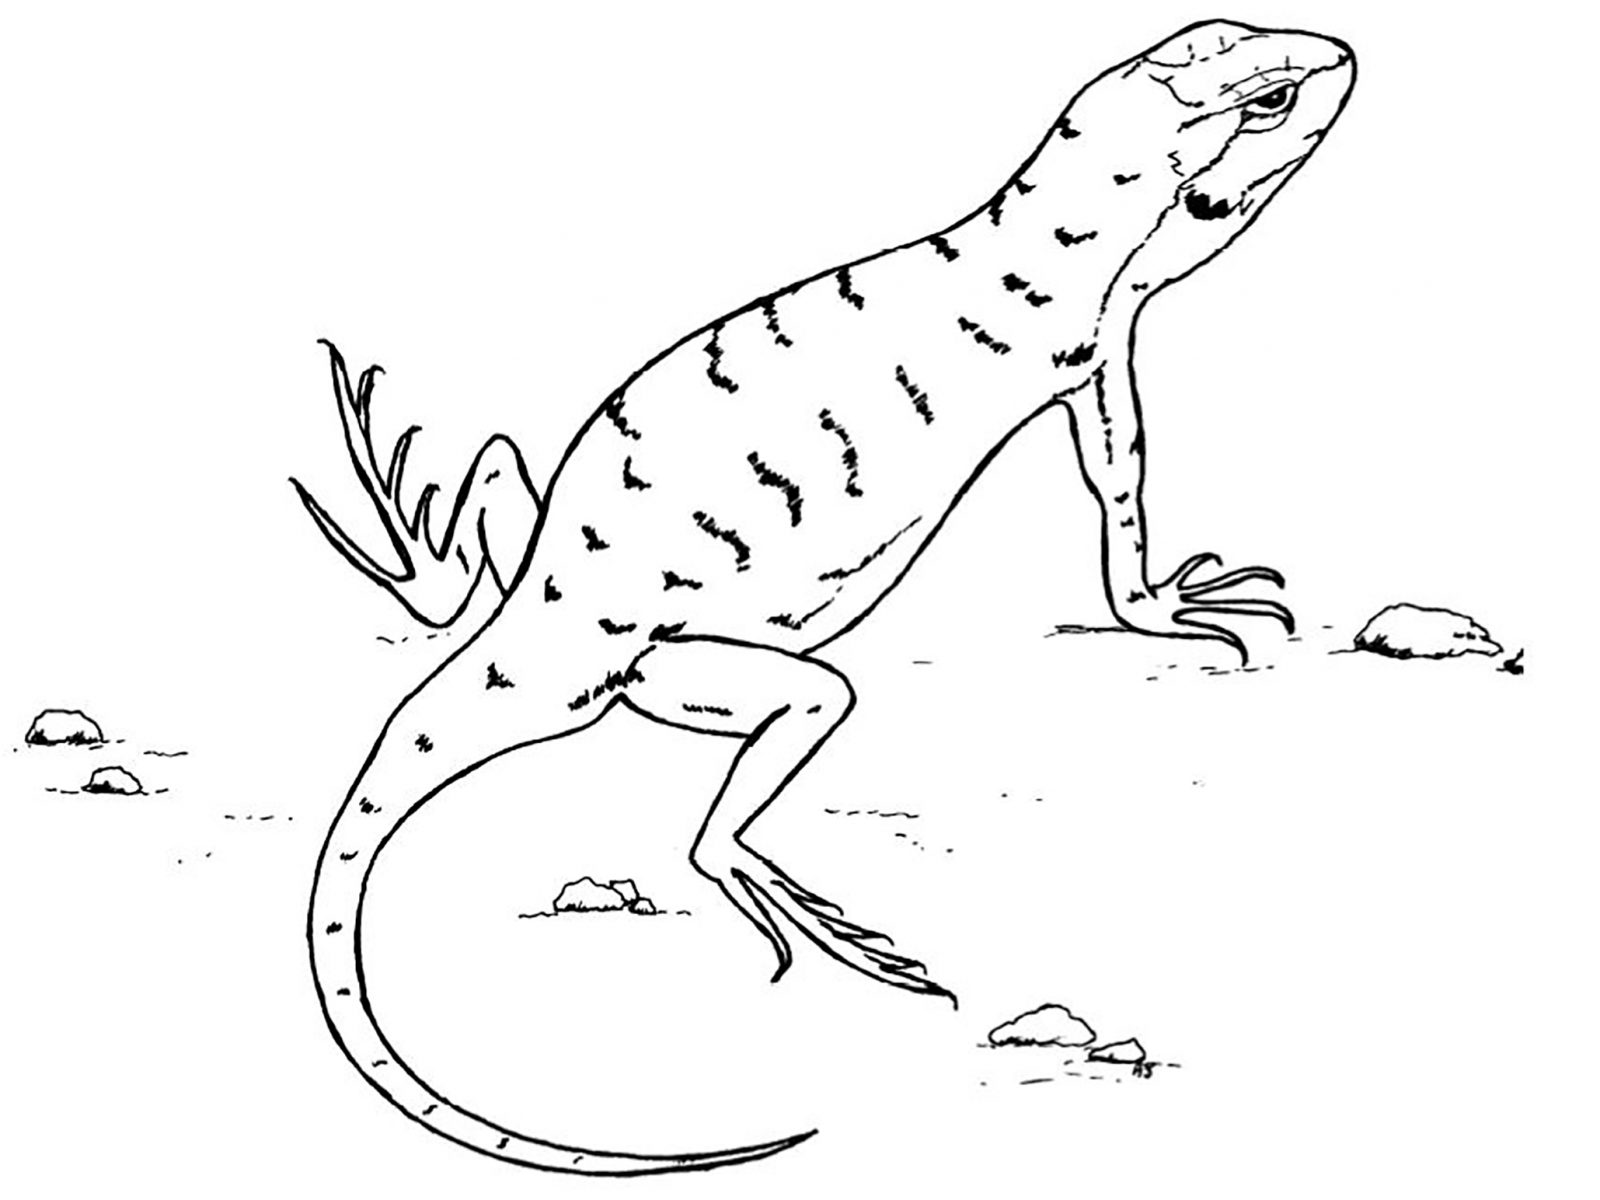 lizard coloring page free lizard coloring pages coloring lizard page